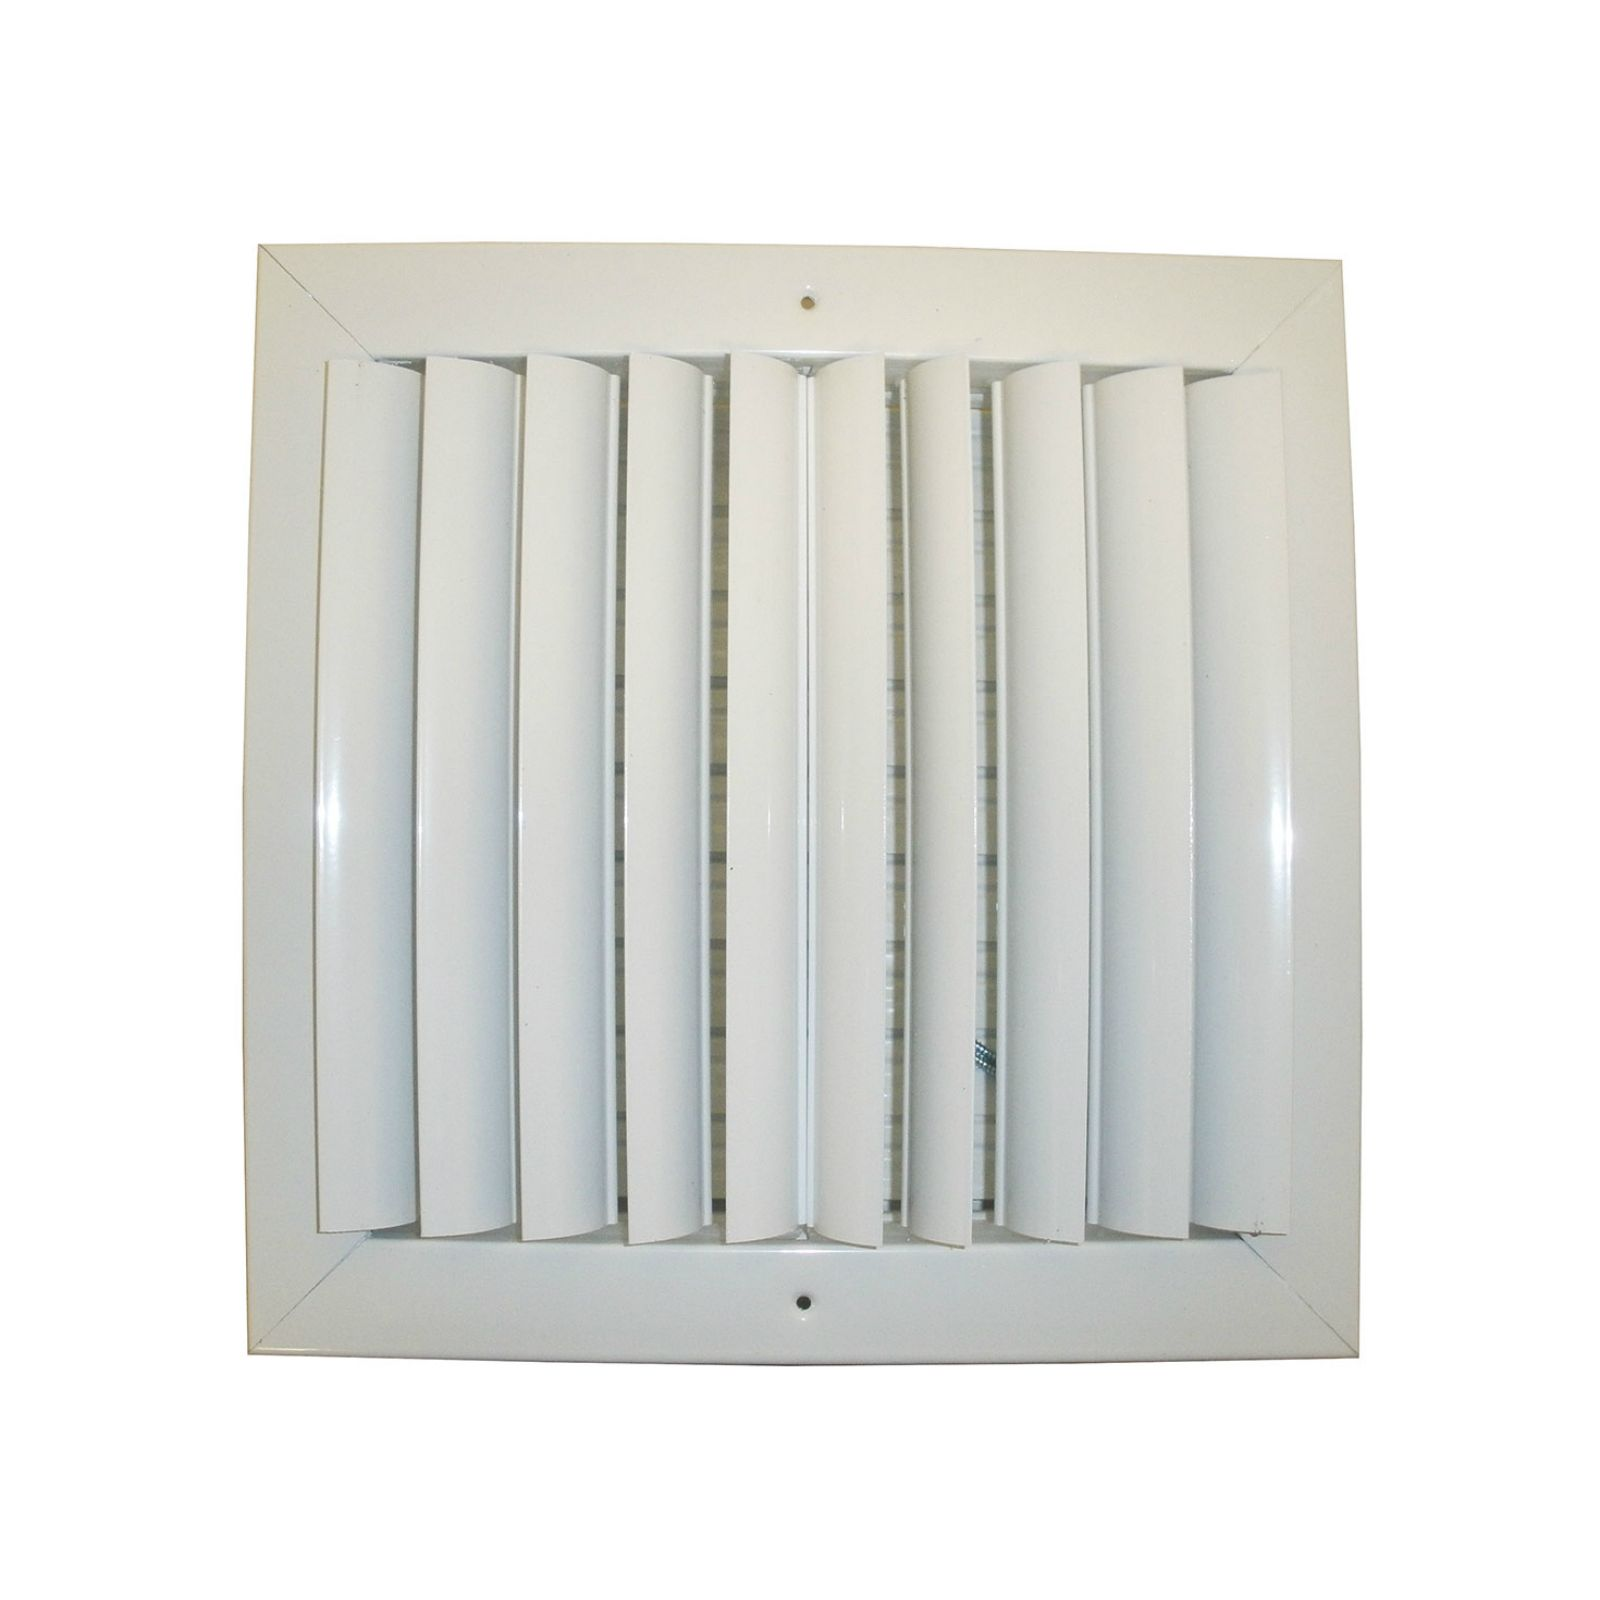 "Grille Tech CL2M0606 - Aluminum Ceiling 2-Way Deflection Supply, Multi-shutter 6"" X 6"" White"